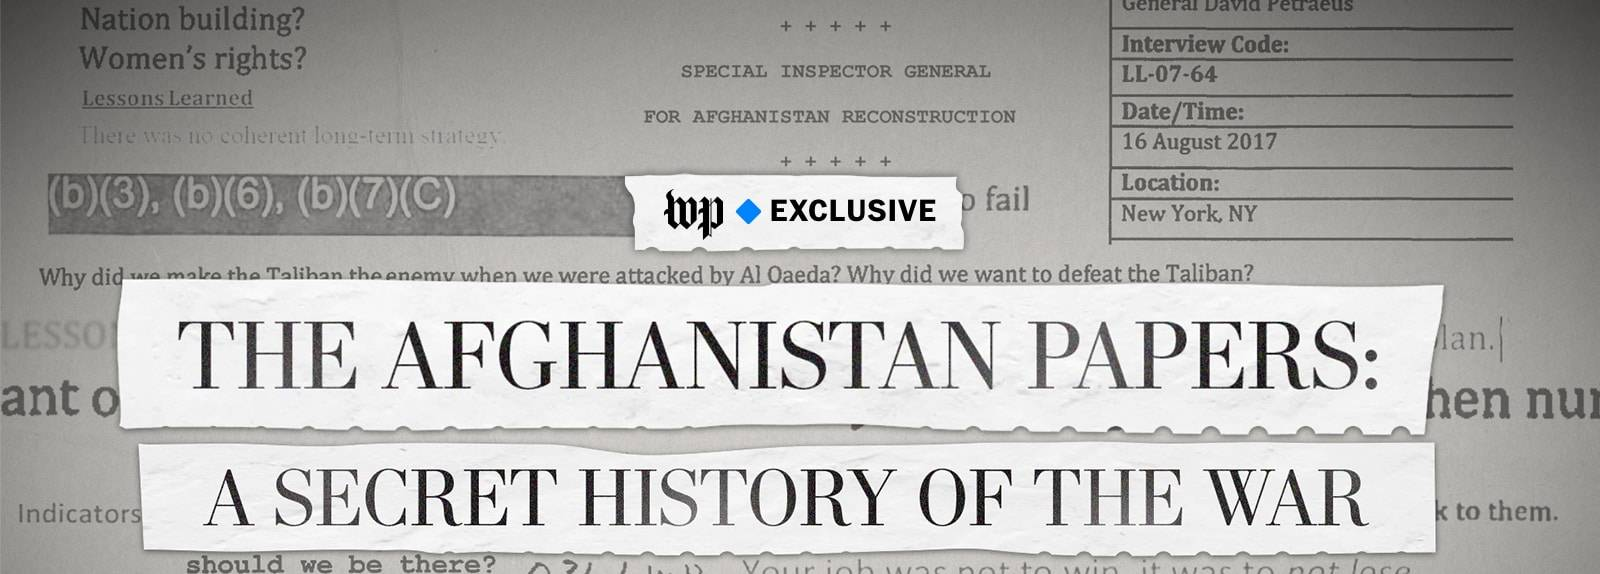 WP EXCLUSIVE - THE AFGHANISTAN PAPERS: A SECRET HISTORY OF THE WAR